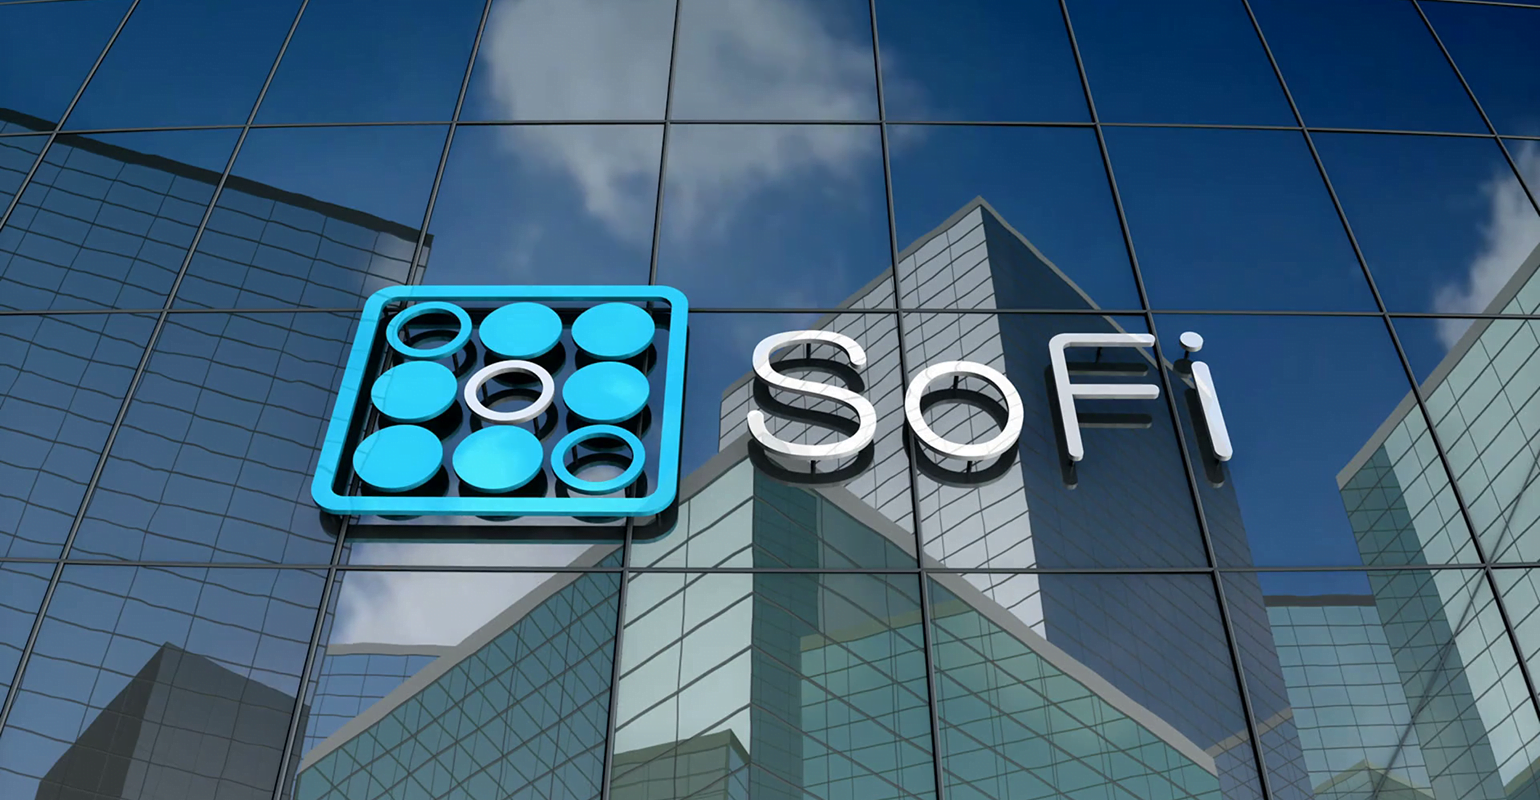 TGIF: SoFi Launches 'Another Creative' ETF